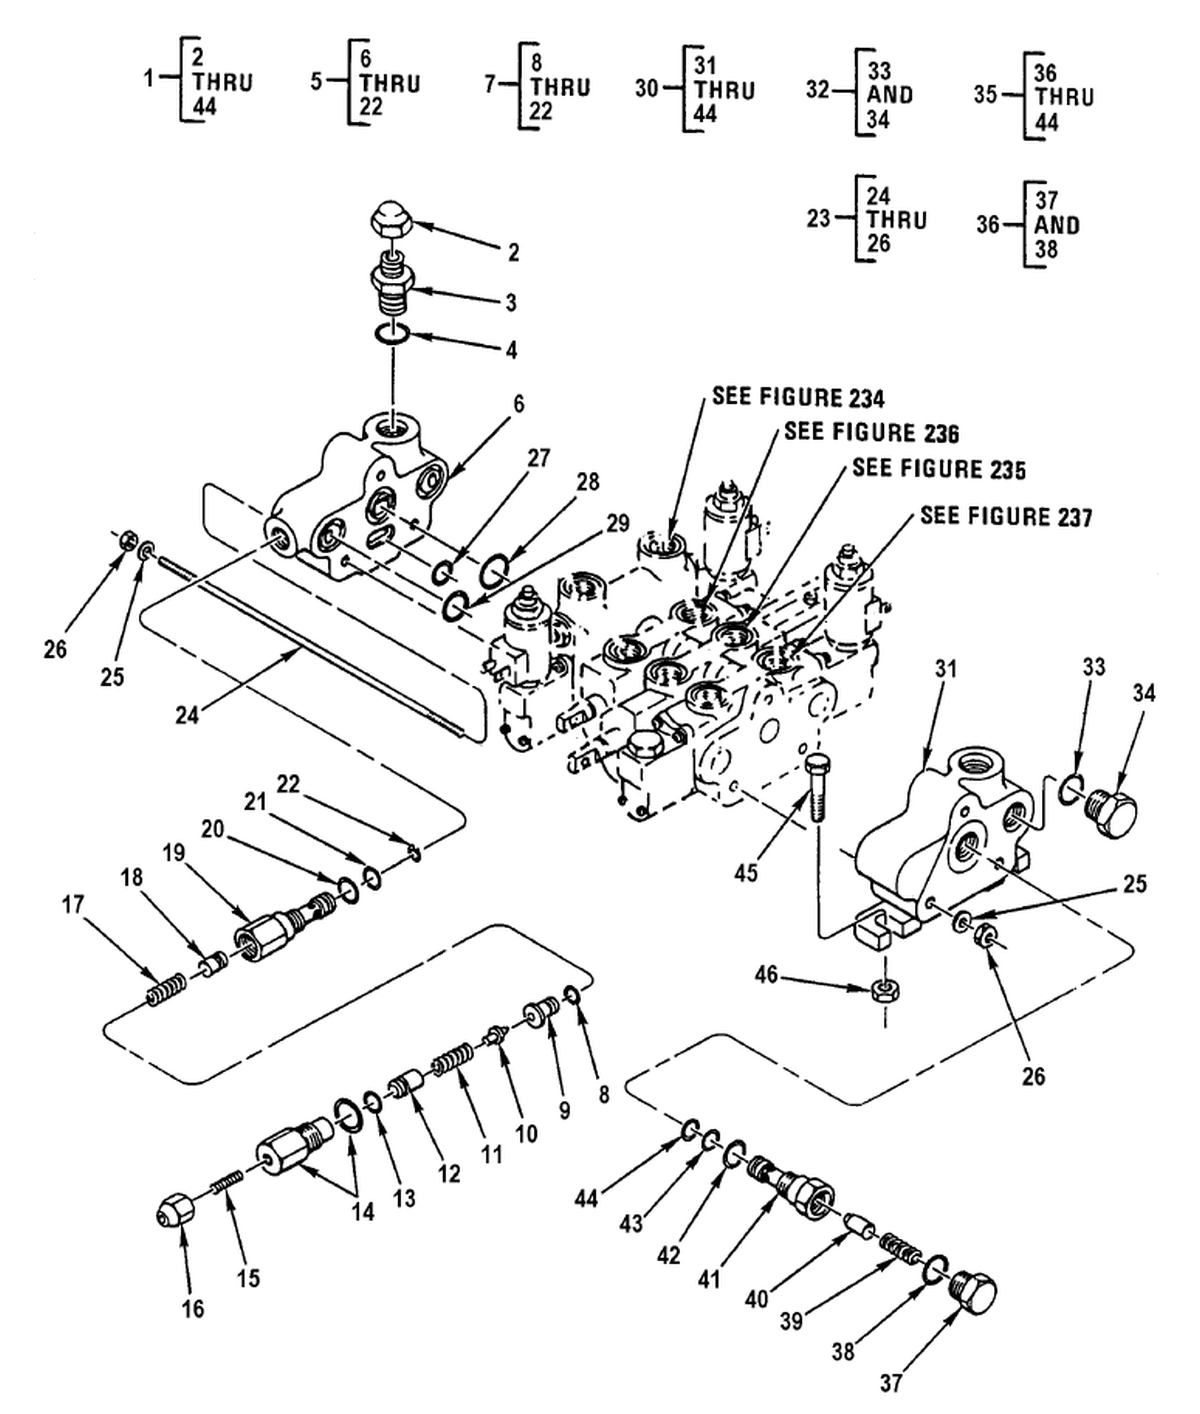 Forklift Hydraulic Control Valve Diagram Trusted Wiring Diagrams Toyota 0236 00 2 Figure 233 Front Loader Diverter